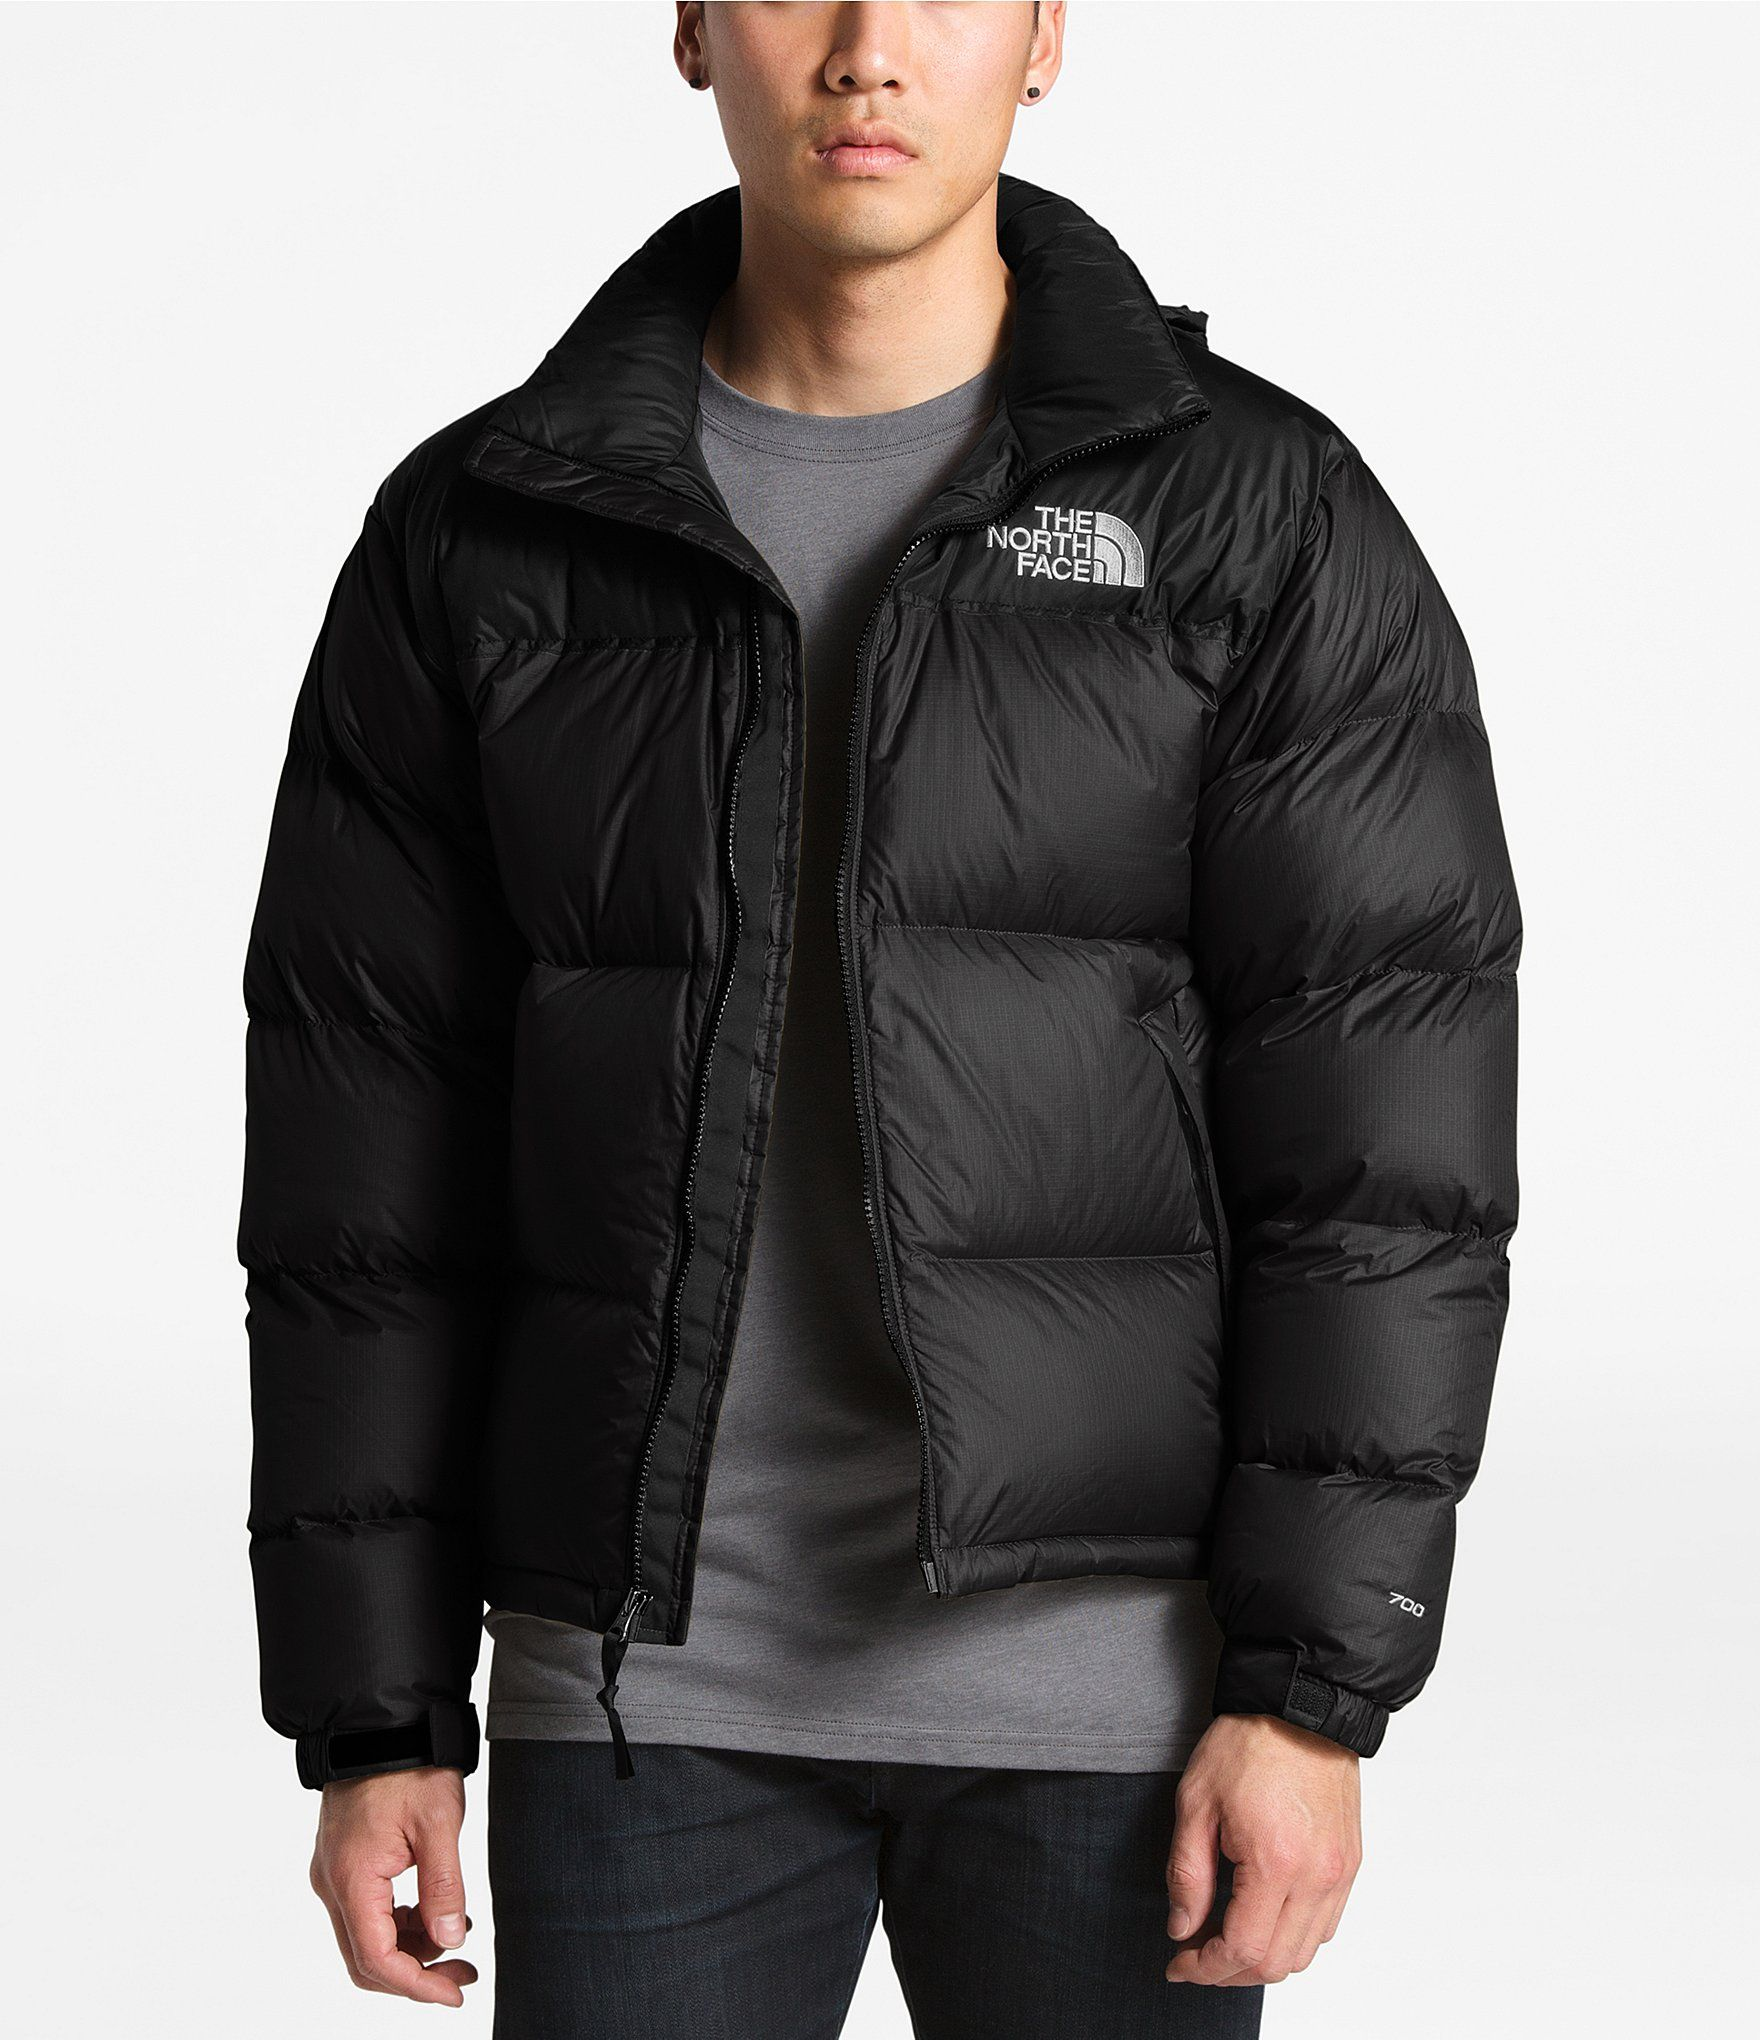 The North Face Solid Nuptse Insulated Puffer Down Jacket Dillard S North Face Puffer Jacket Nuptse Jacket North Face Jacket Mens [ 2040 x 1760 Pixel ]